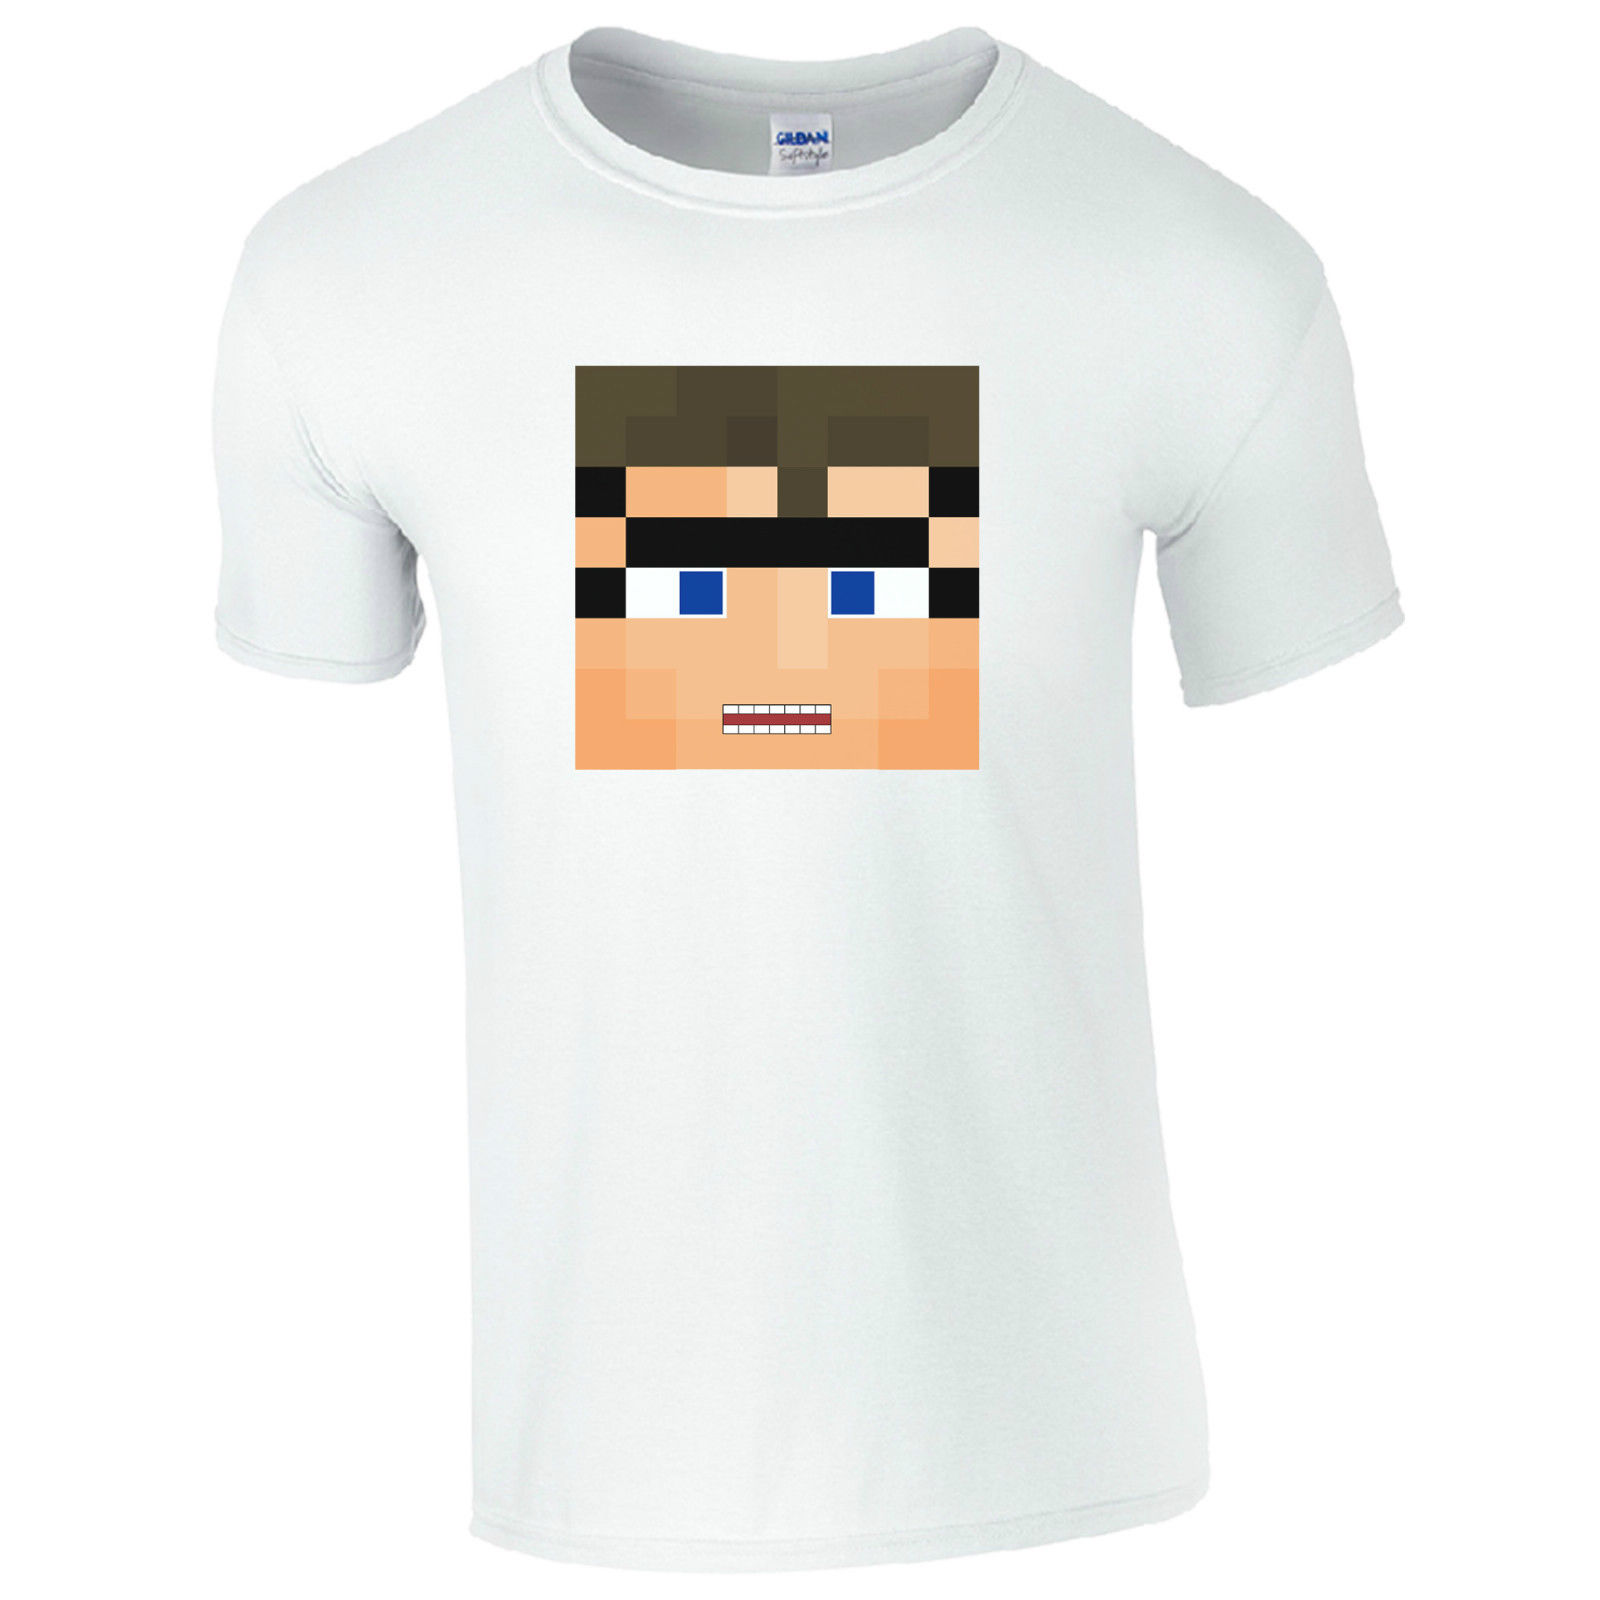 T shirt design youtube - Skydoes T Shirt Sky Inspired Roleplay Gaming Youtube Kids Men Gamers Gift Top Short